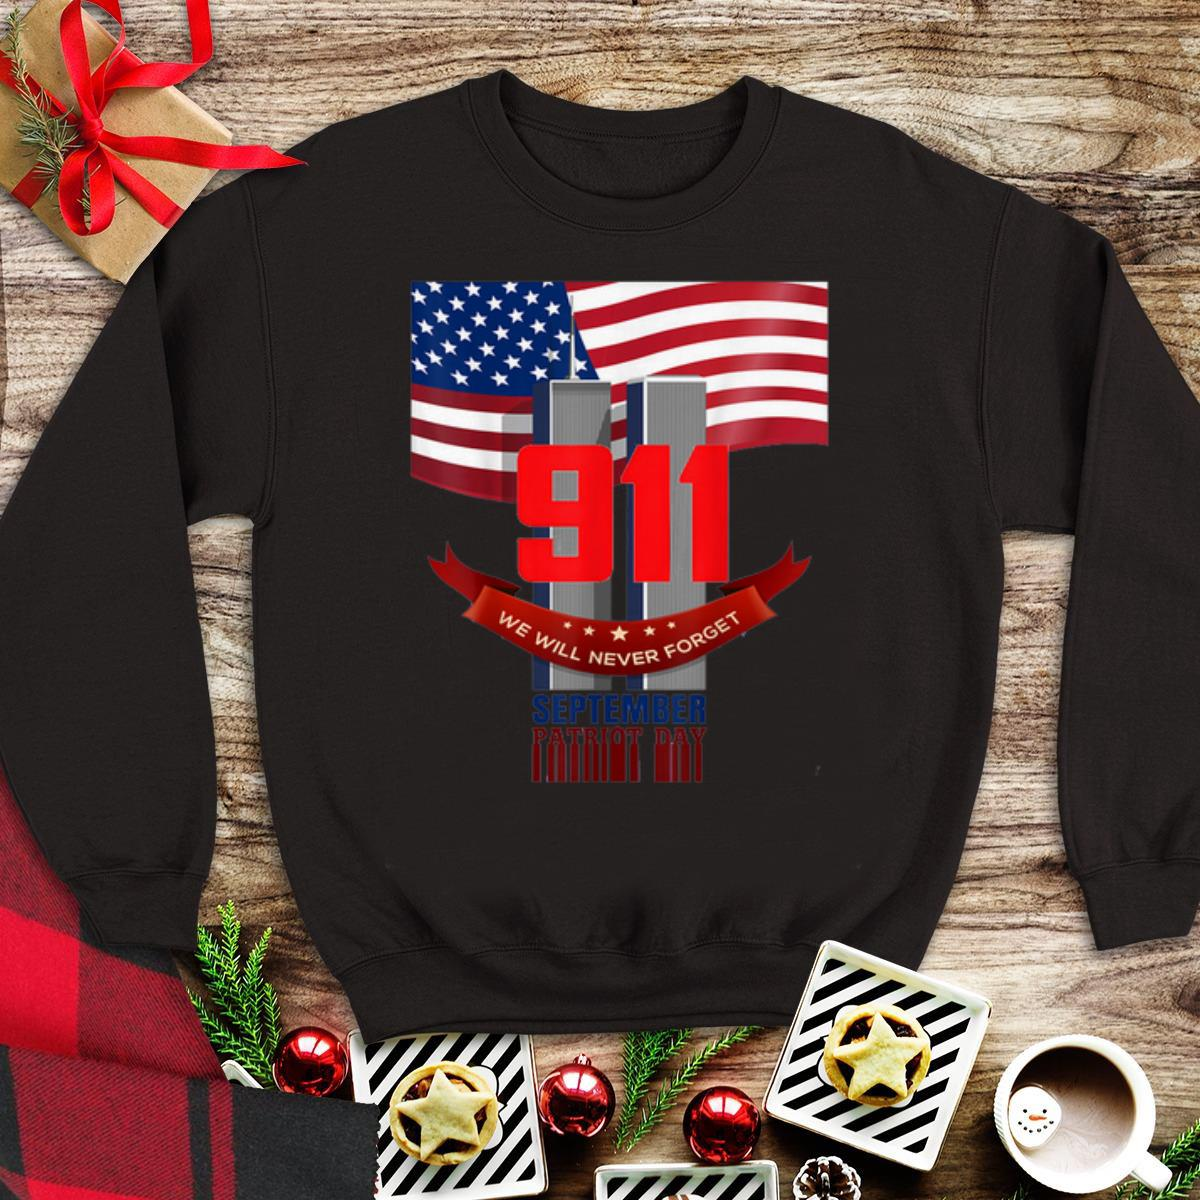 Awesome American Flag 911 We Will Never Forget Patriot Day shirt